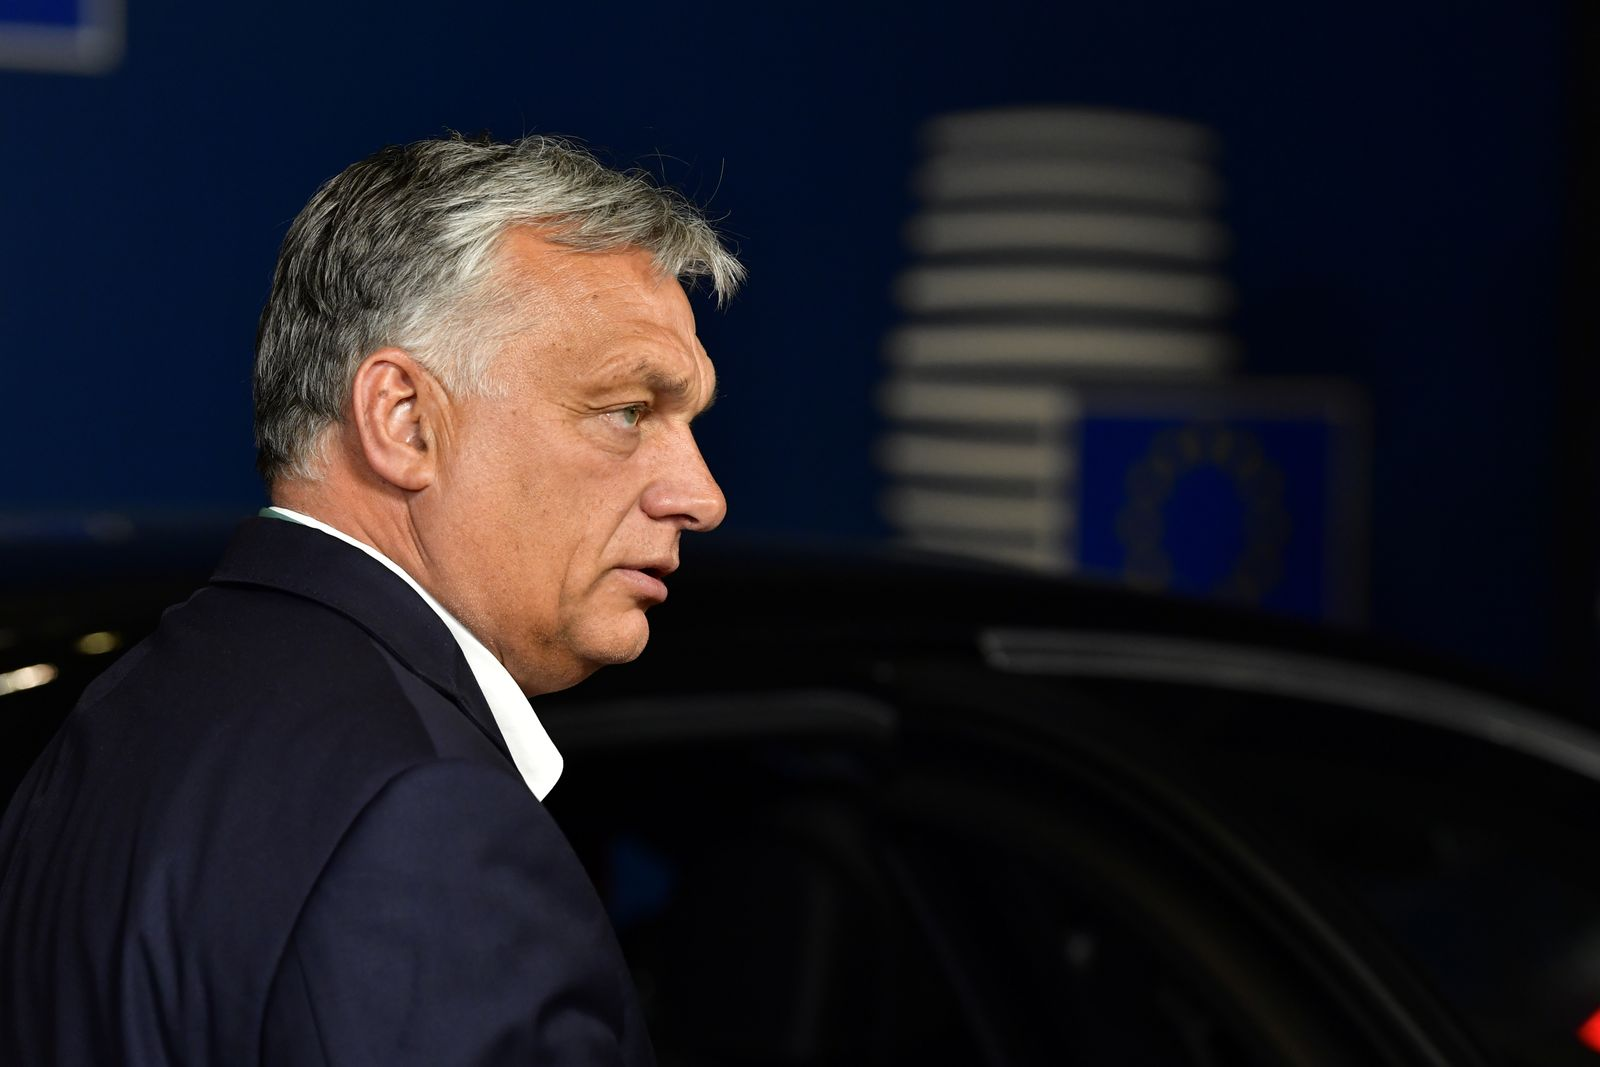 Hungary's Prime Minister Viktor Orban leaves after a meeting of an EU summit on a coronavirus recovery package at the European Council building in Brussels